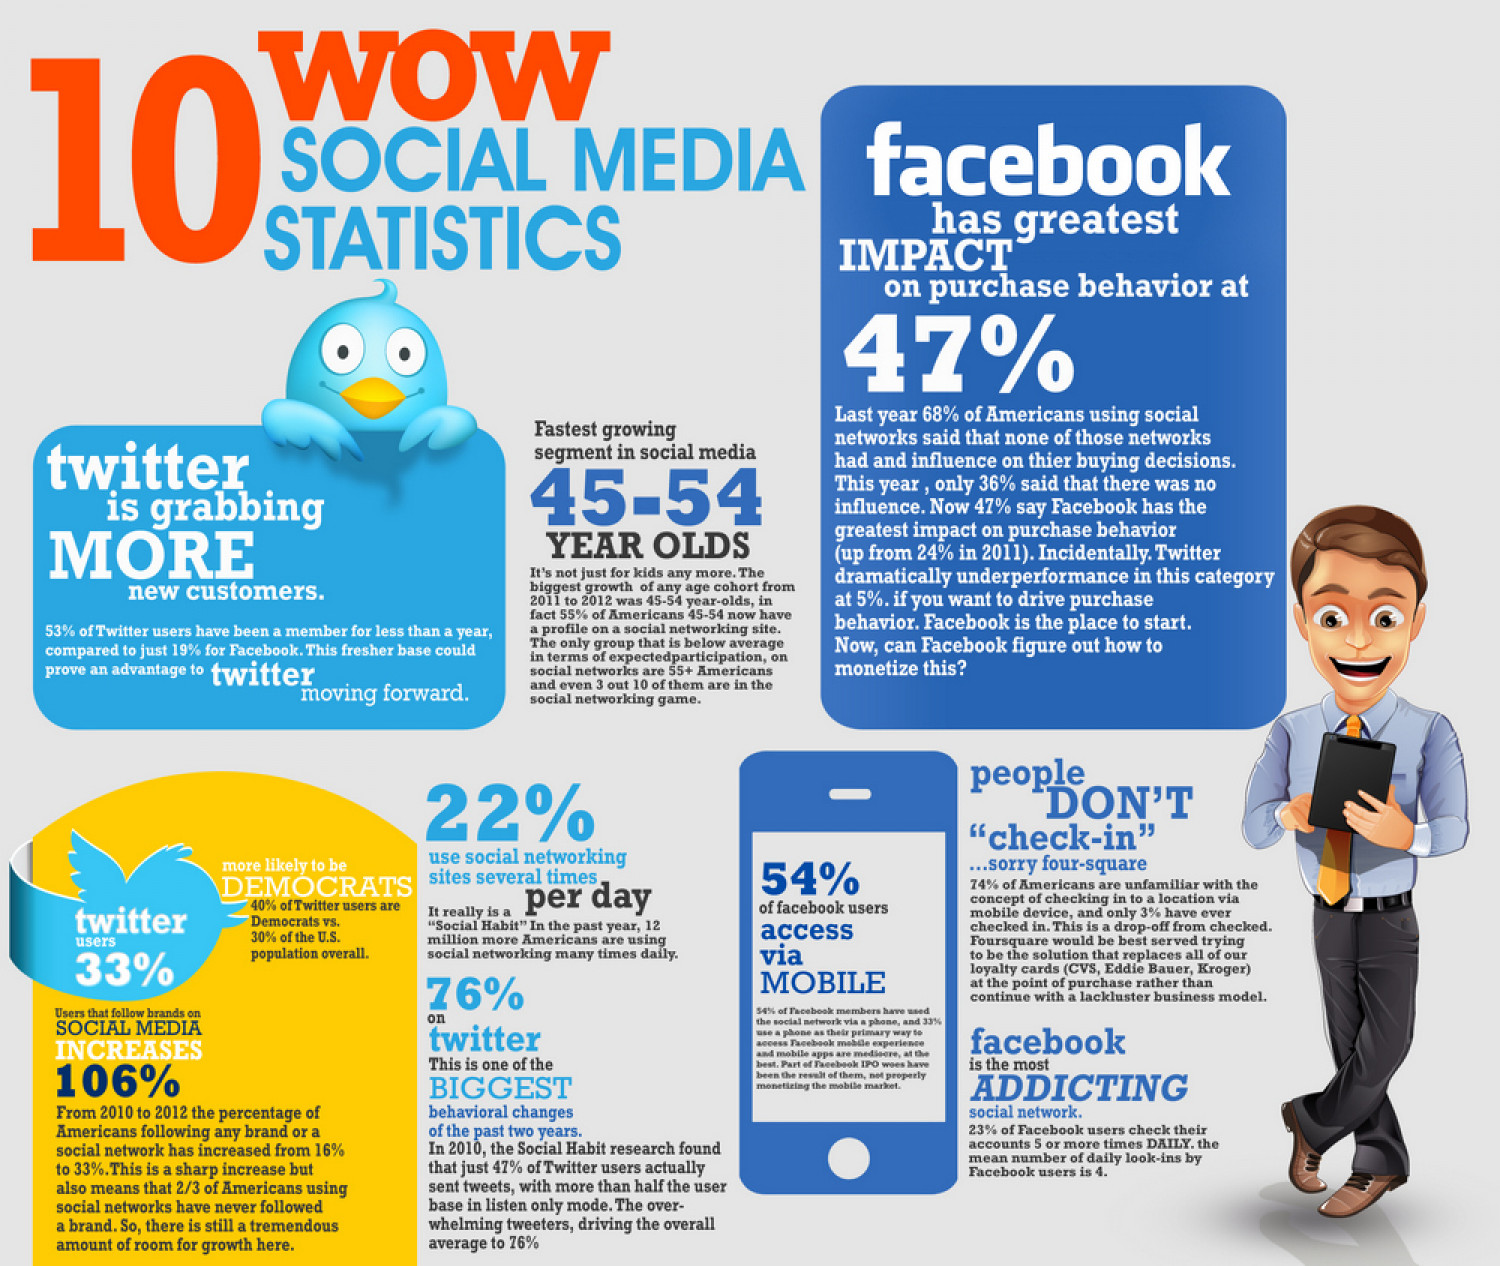 examples of social media at work in the classroom infographic